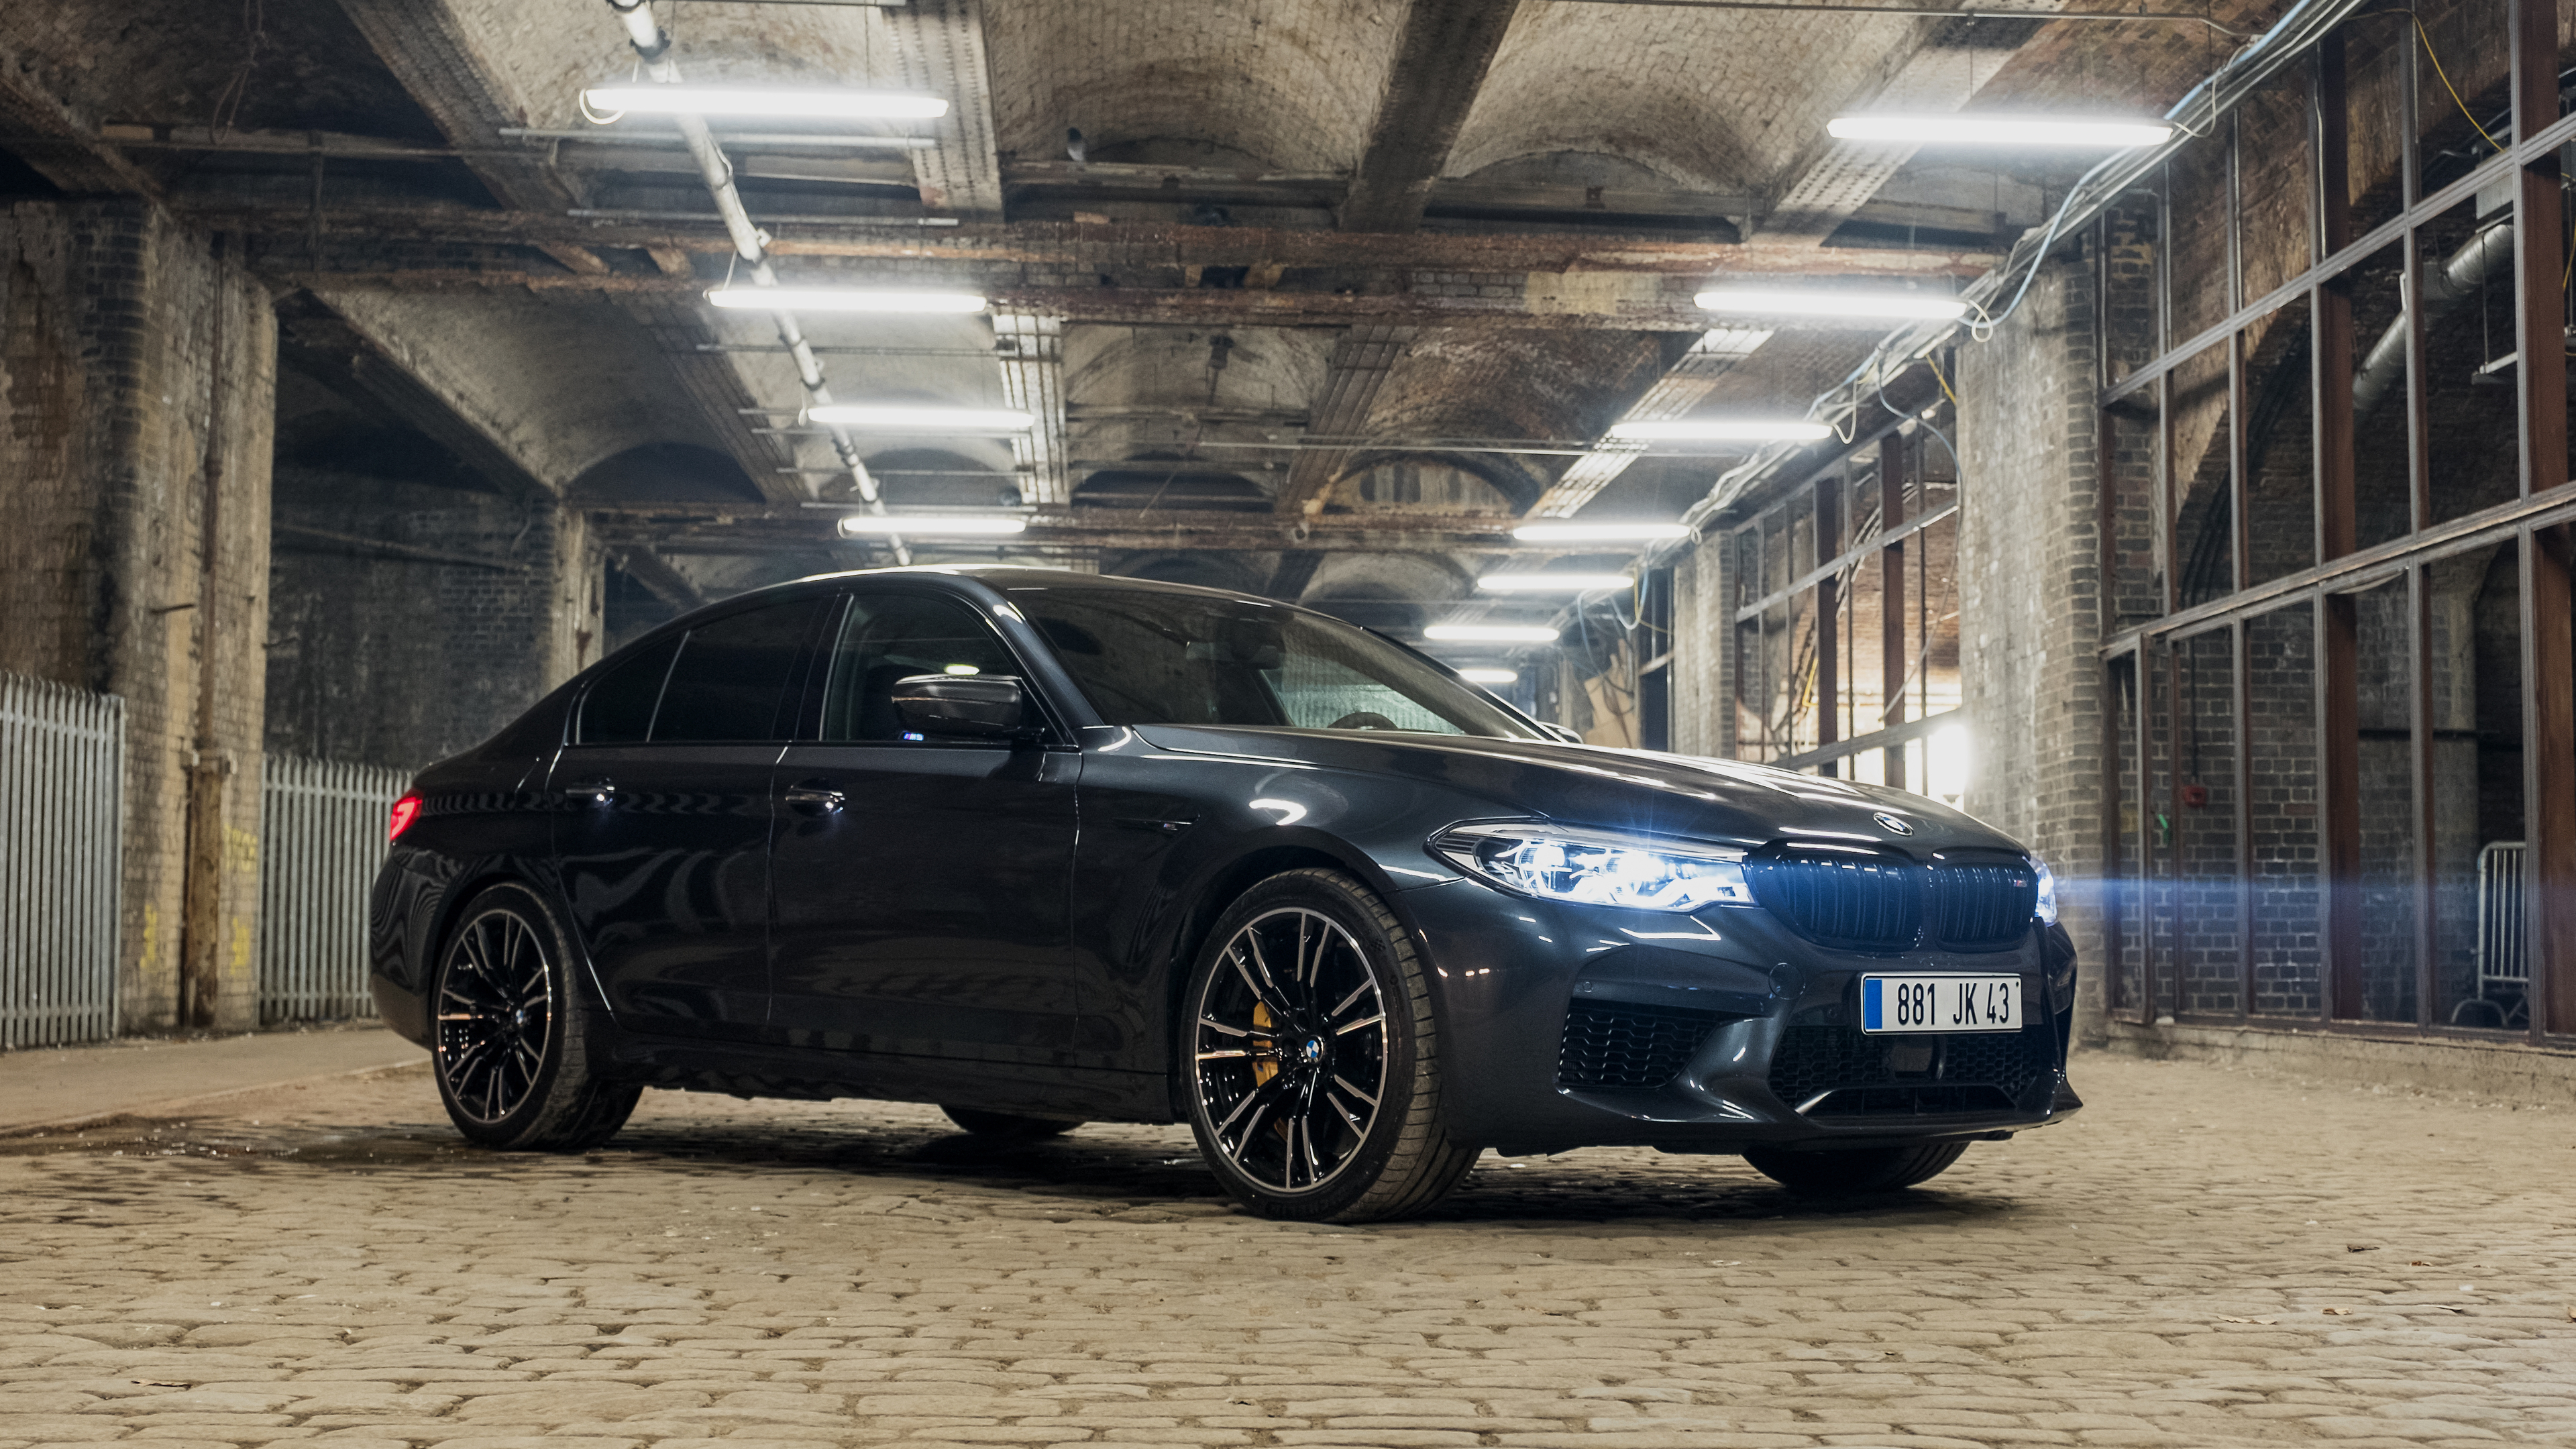 3840x2160 Mission Impossible Fallout Bmw M5 4k Hd 4k